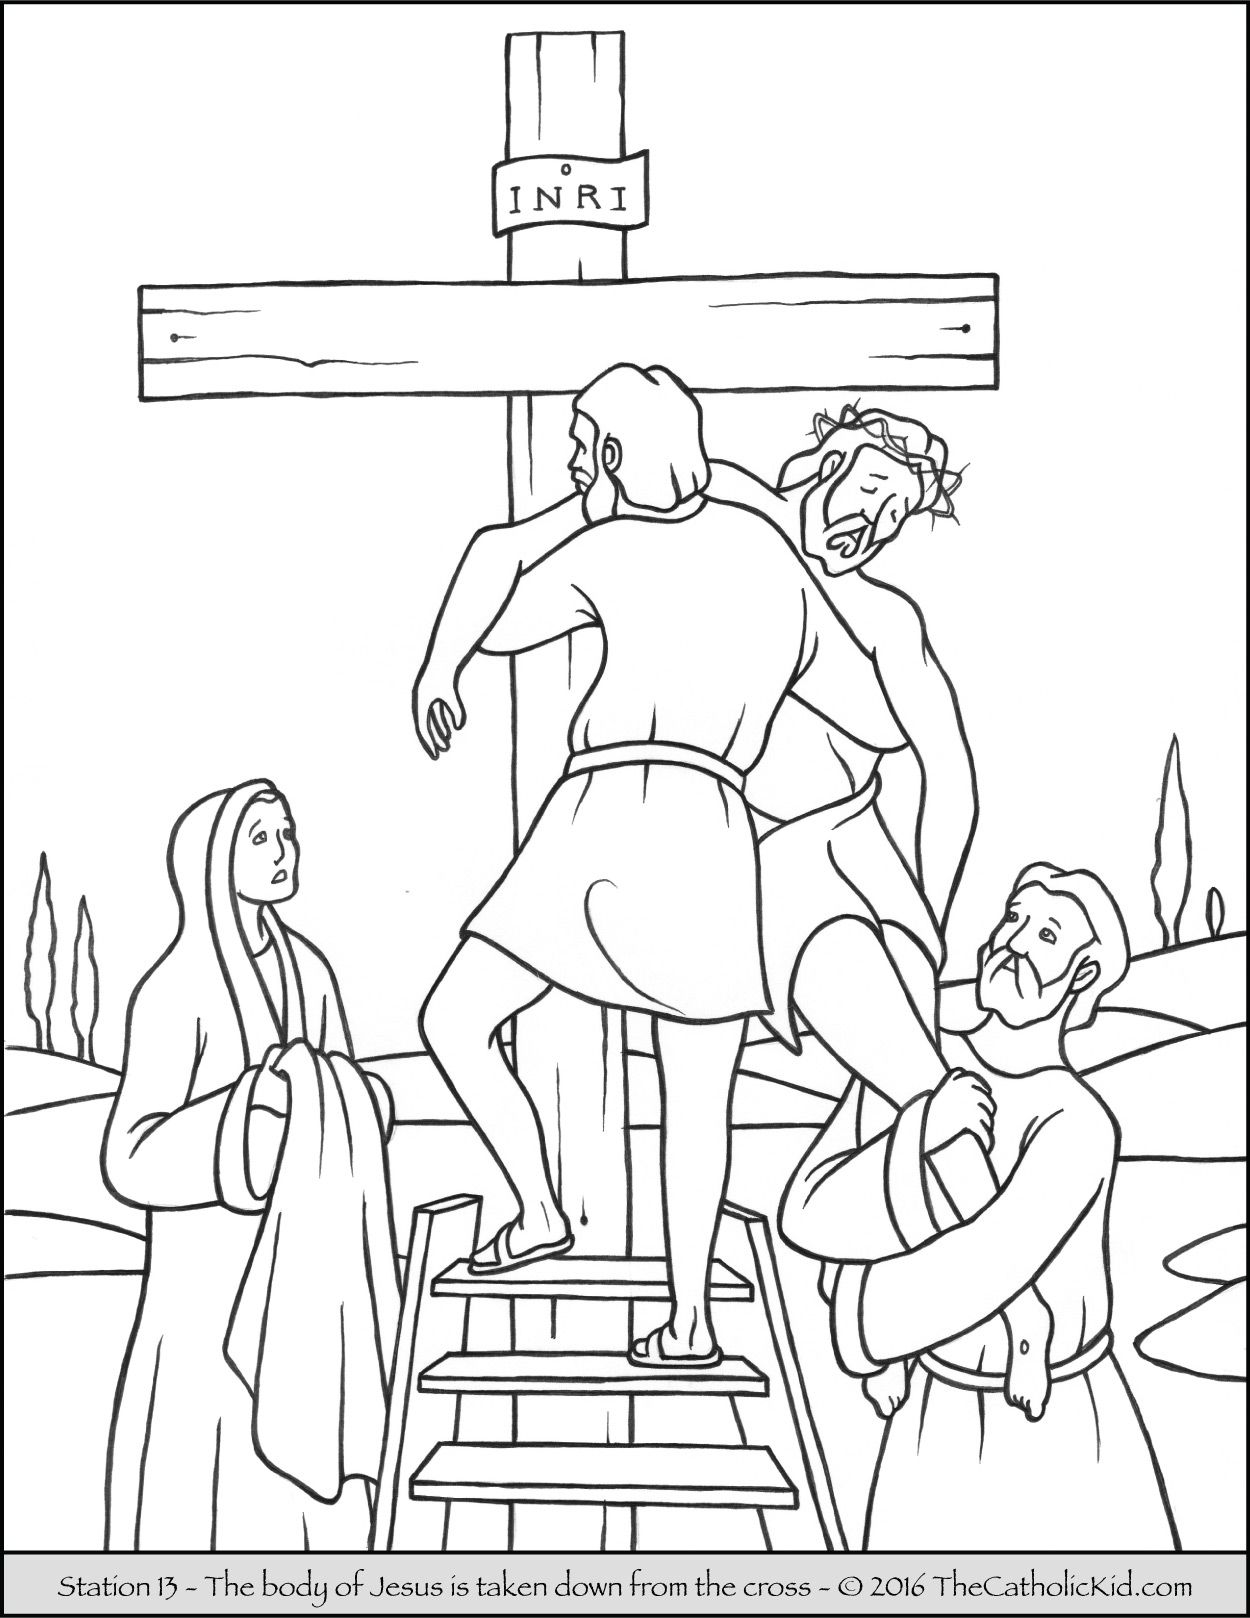 stations of the cross coloring pages 13 the body of jesus is